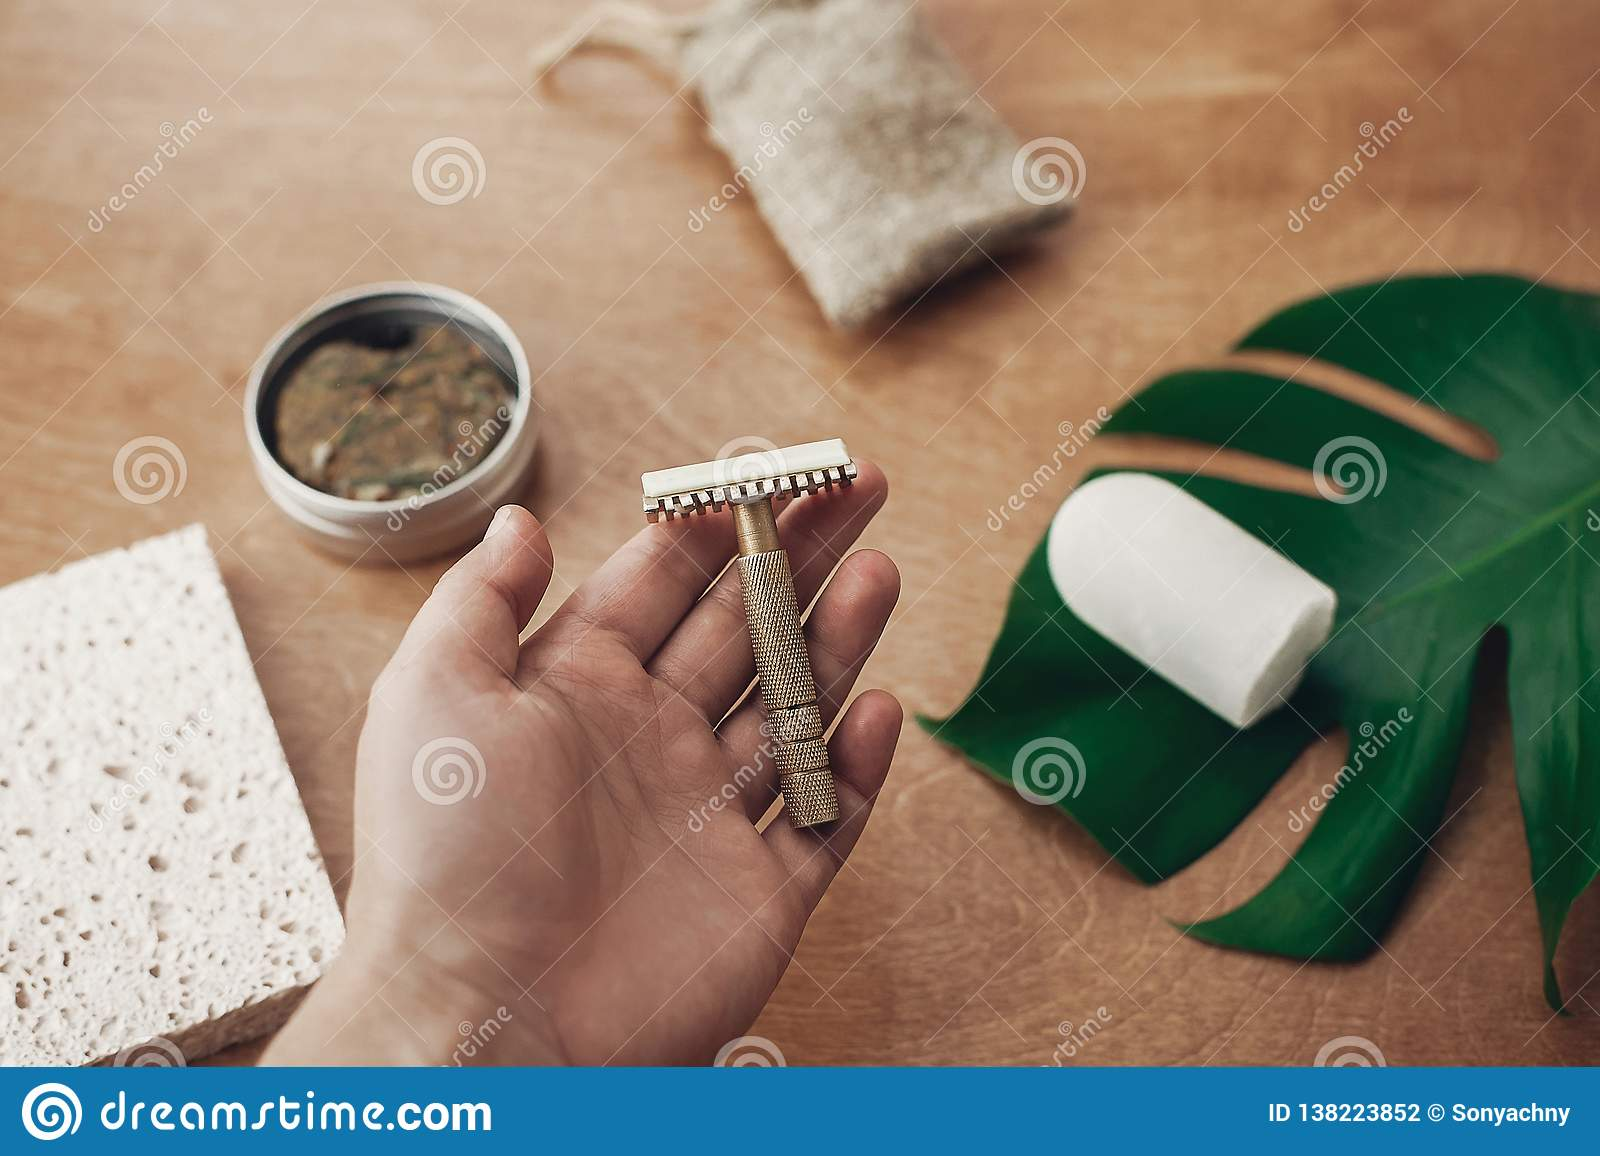 Zero waste, plastic free beauty essentials. Hand holding reusable razor for shaving on background of natural soap, solid shampoo,